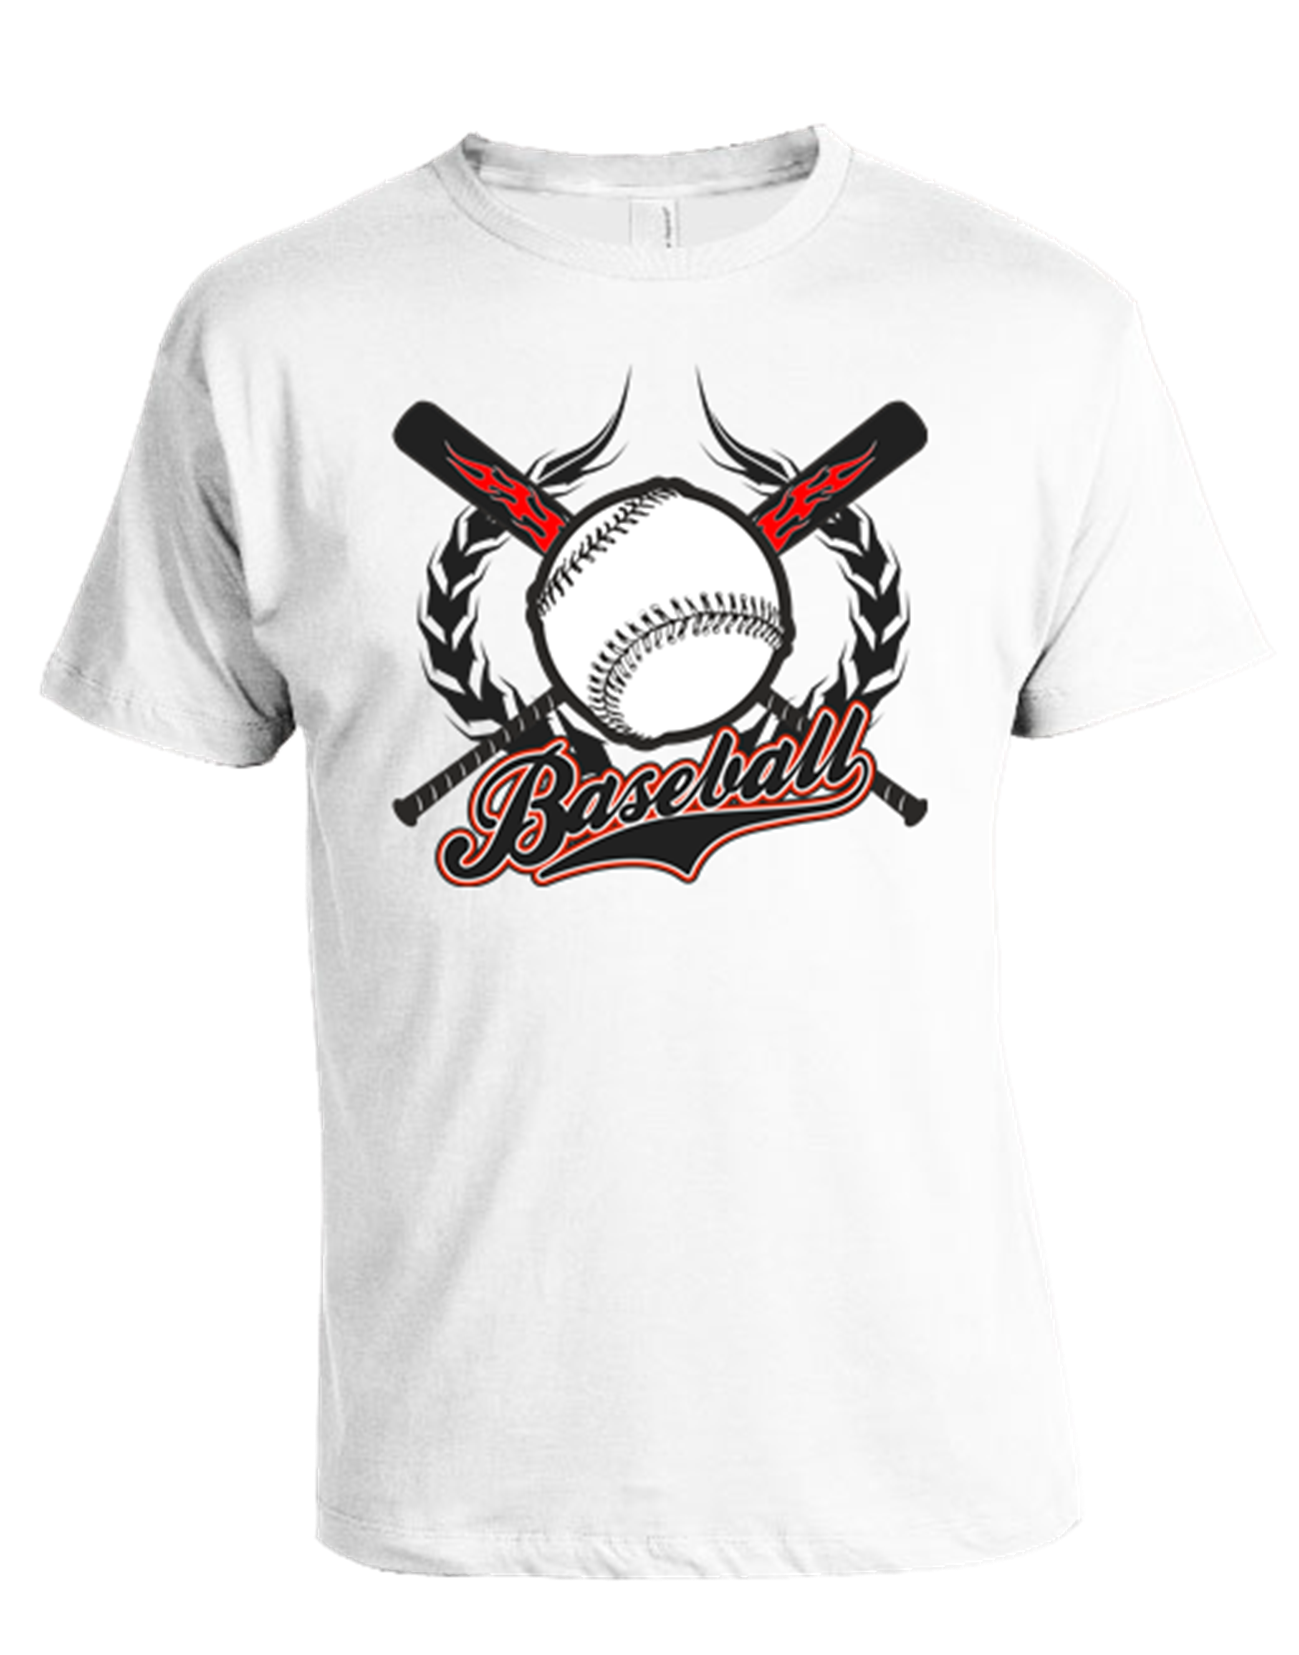 baseball t shirt designs ideas youre killin me smalls sandlot baseball t shirt baseball design t